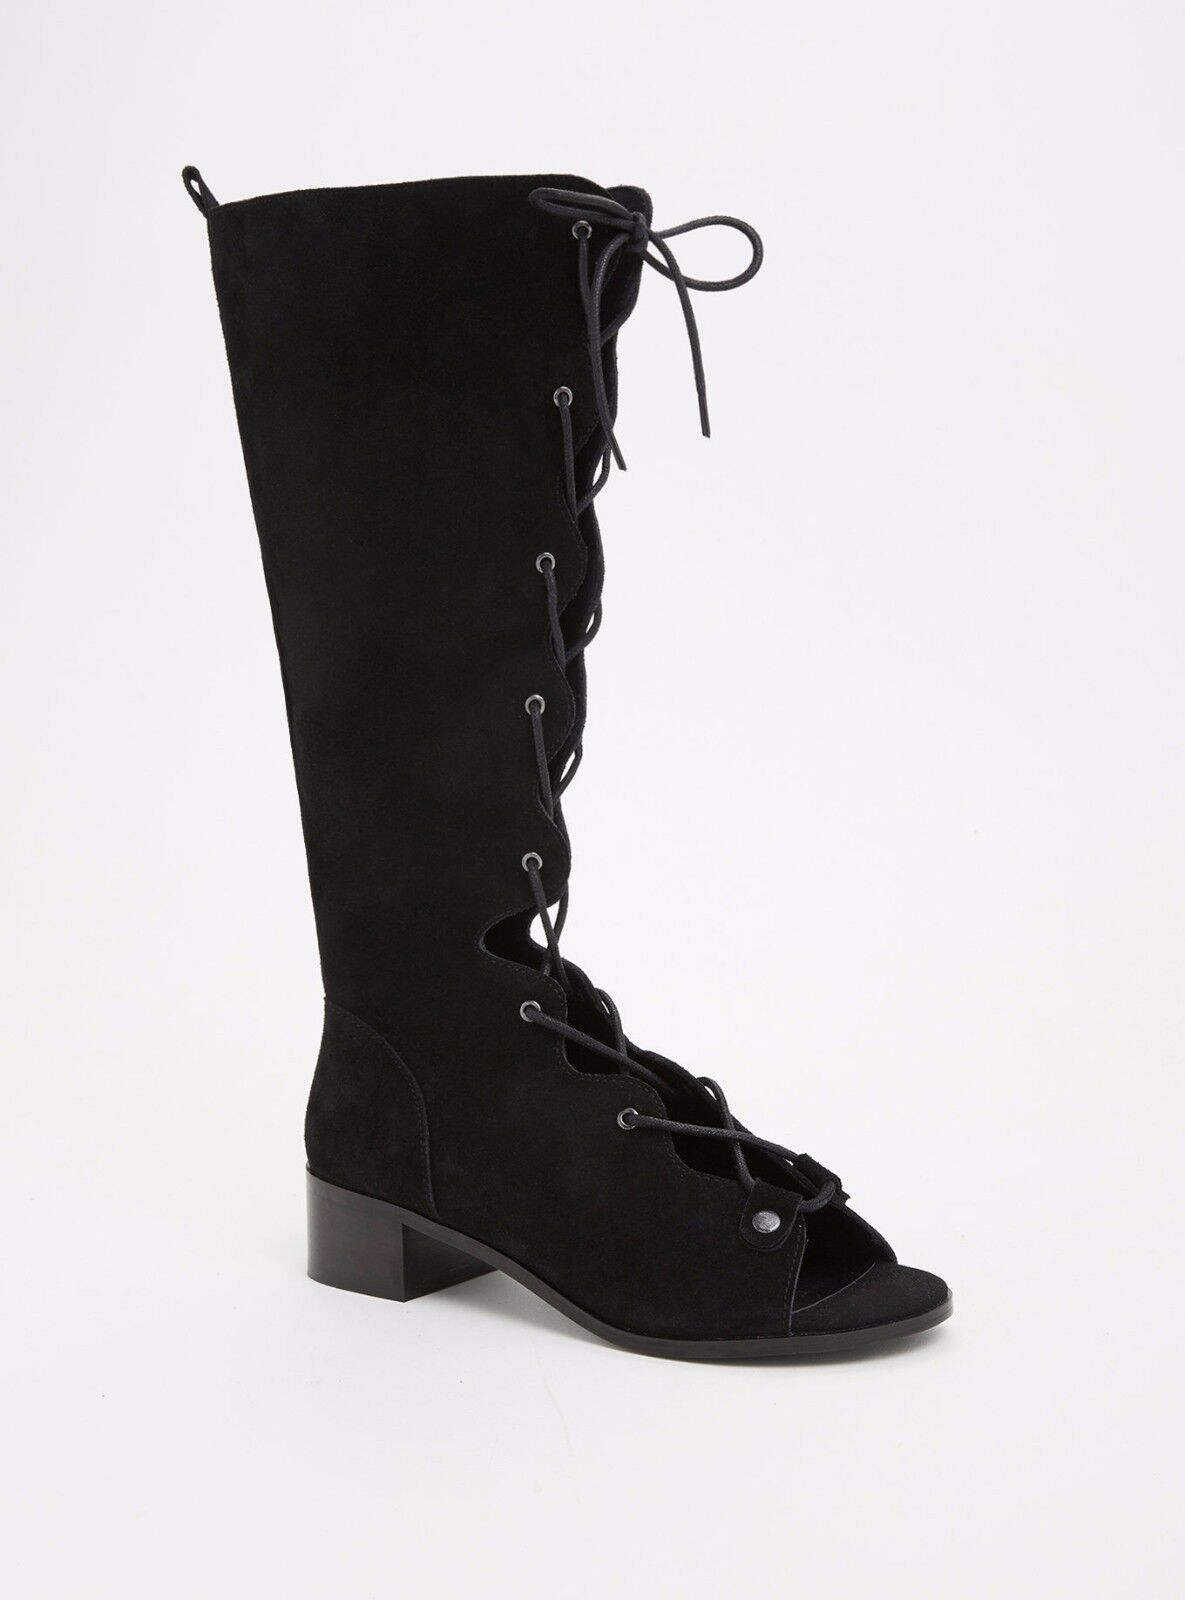 Torrid Genuine Suede Lace Up Gladiator Boots Boots Boots Wide Width Black 8  65046 8bdb7d